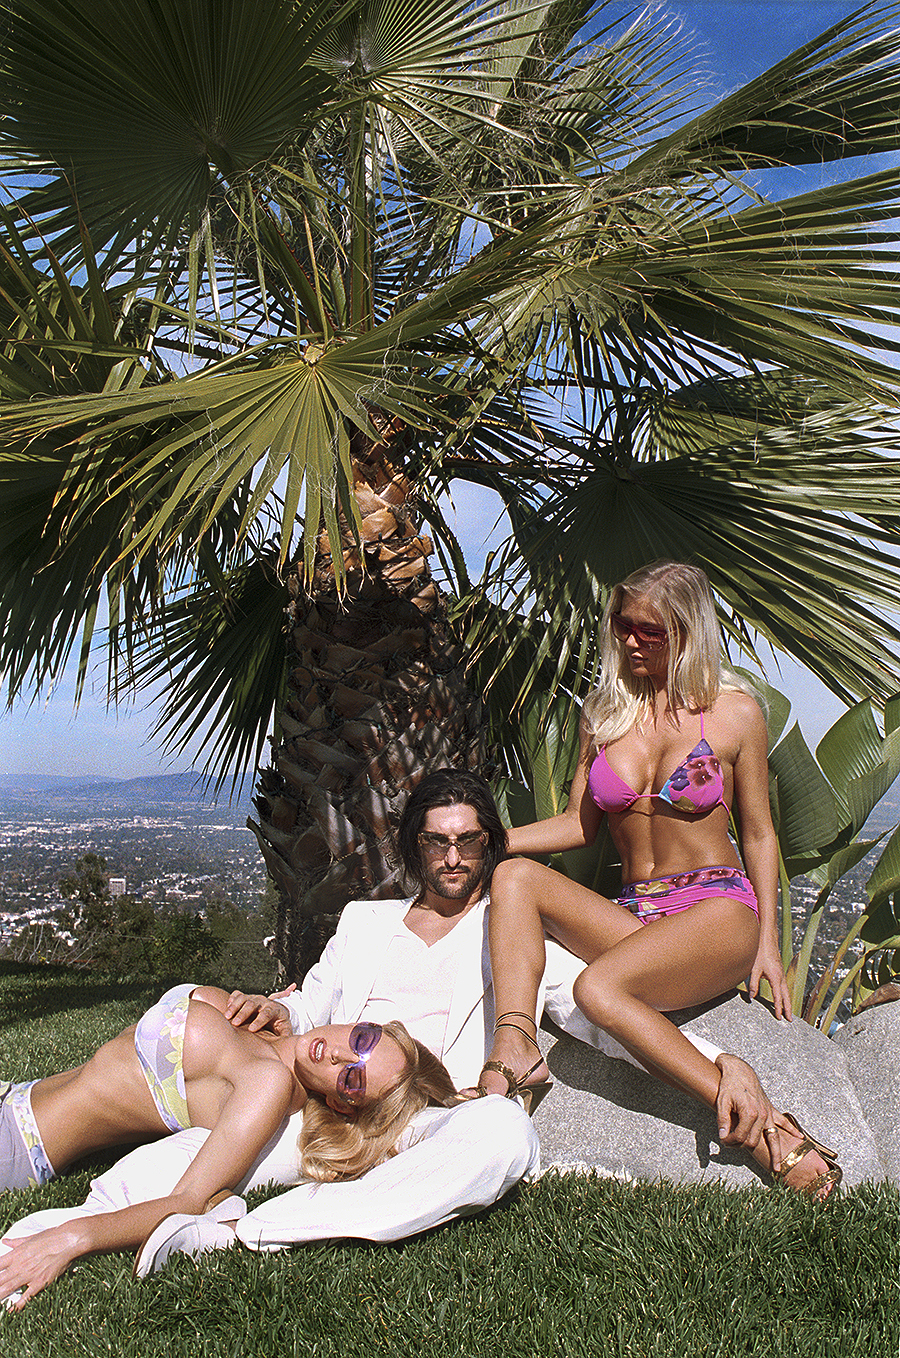 Tony_Ward_fashion_photography_German_GQ_Mulholland_Drive_Los_Angeles_bathing_suits_jackets_poolside_hollywood_hills